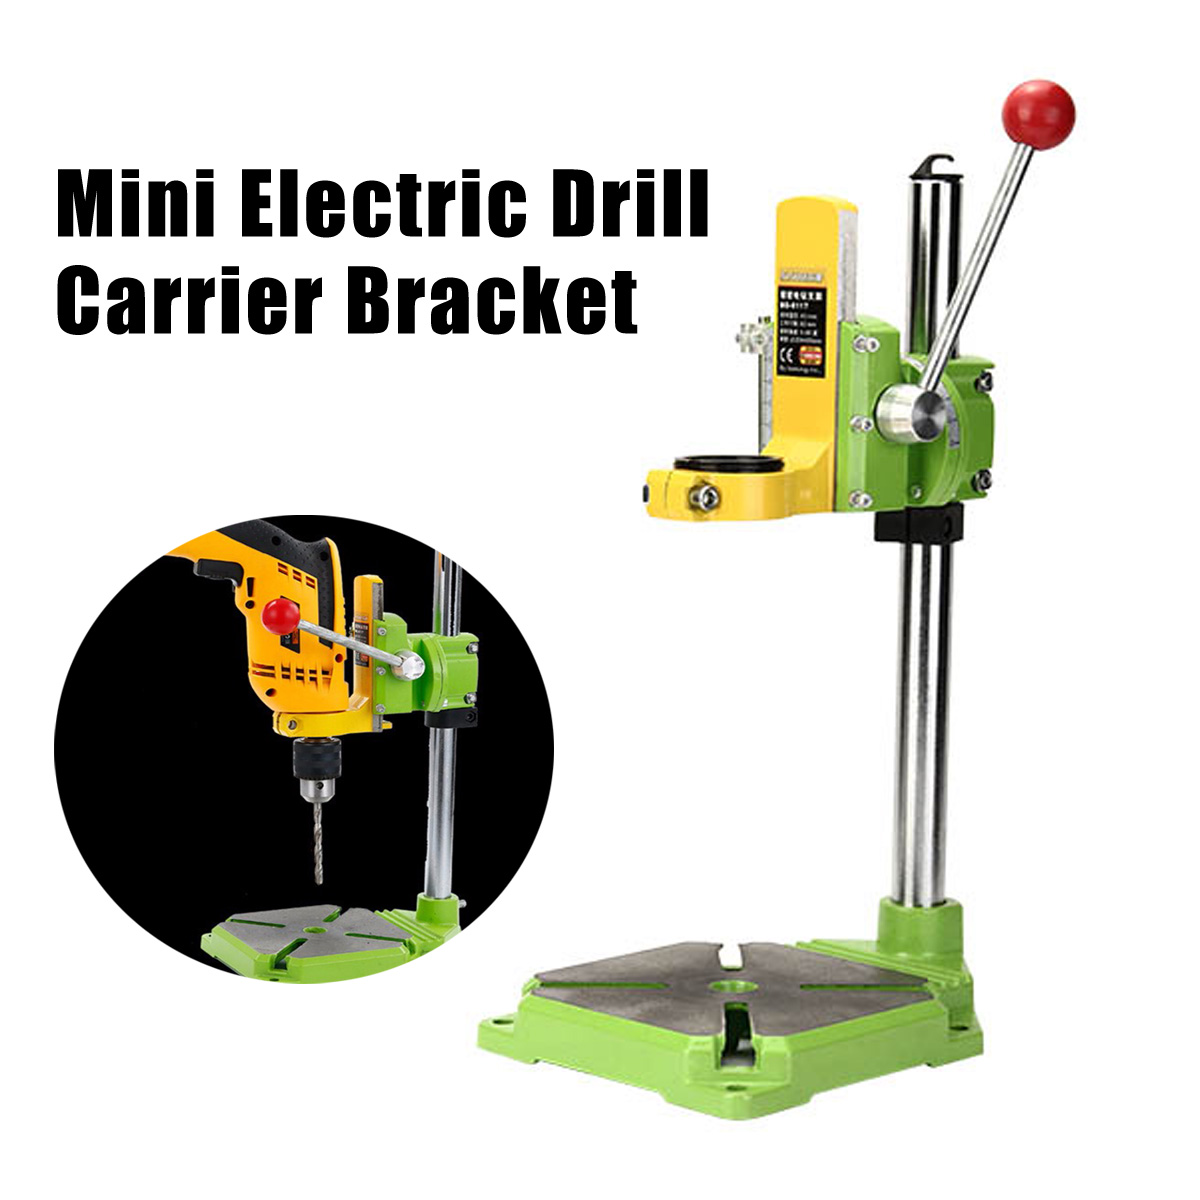 Bench Drill Stand Press Mini Electric Drill Carrier Bracket Right Angle Rotating Fixed Frame 10mm variable speed electric drill for angle 380w hand drill 90 angle electric drill 0 1400rpm right angle hand electric drill